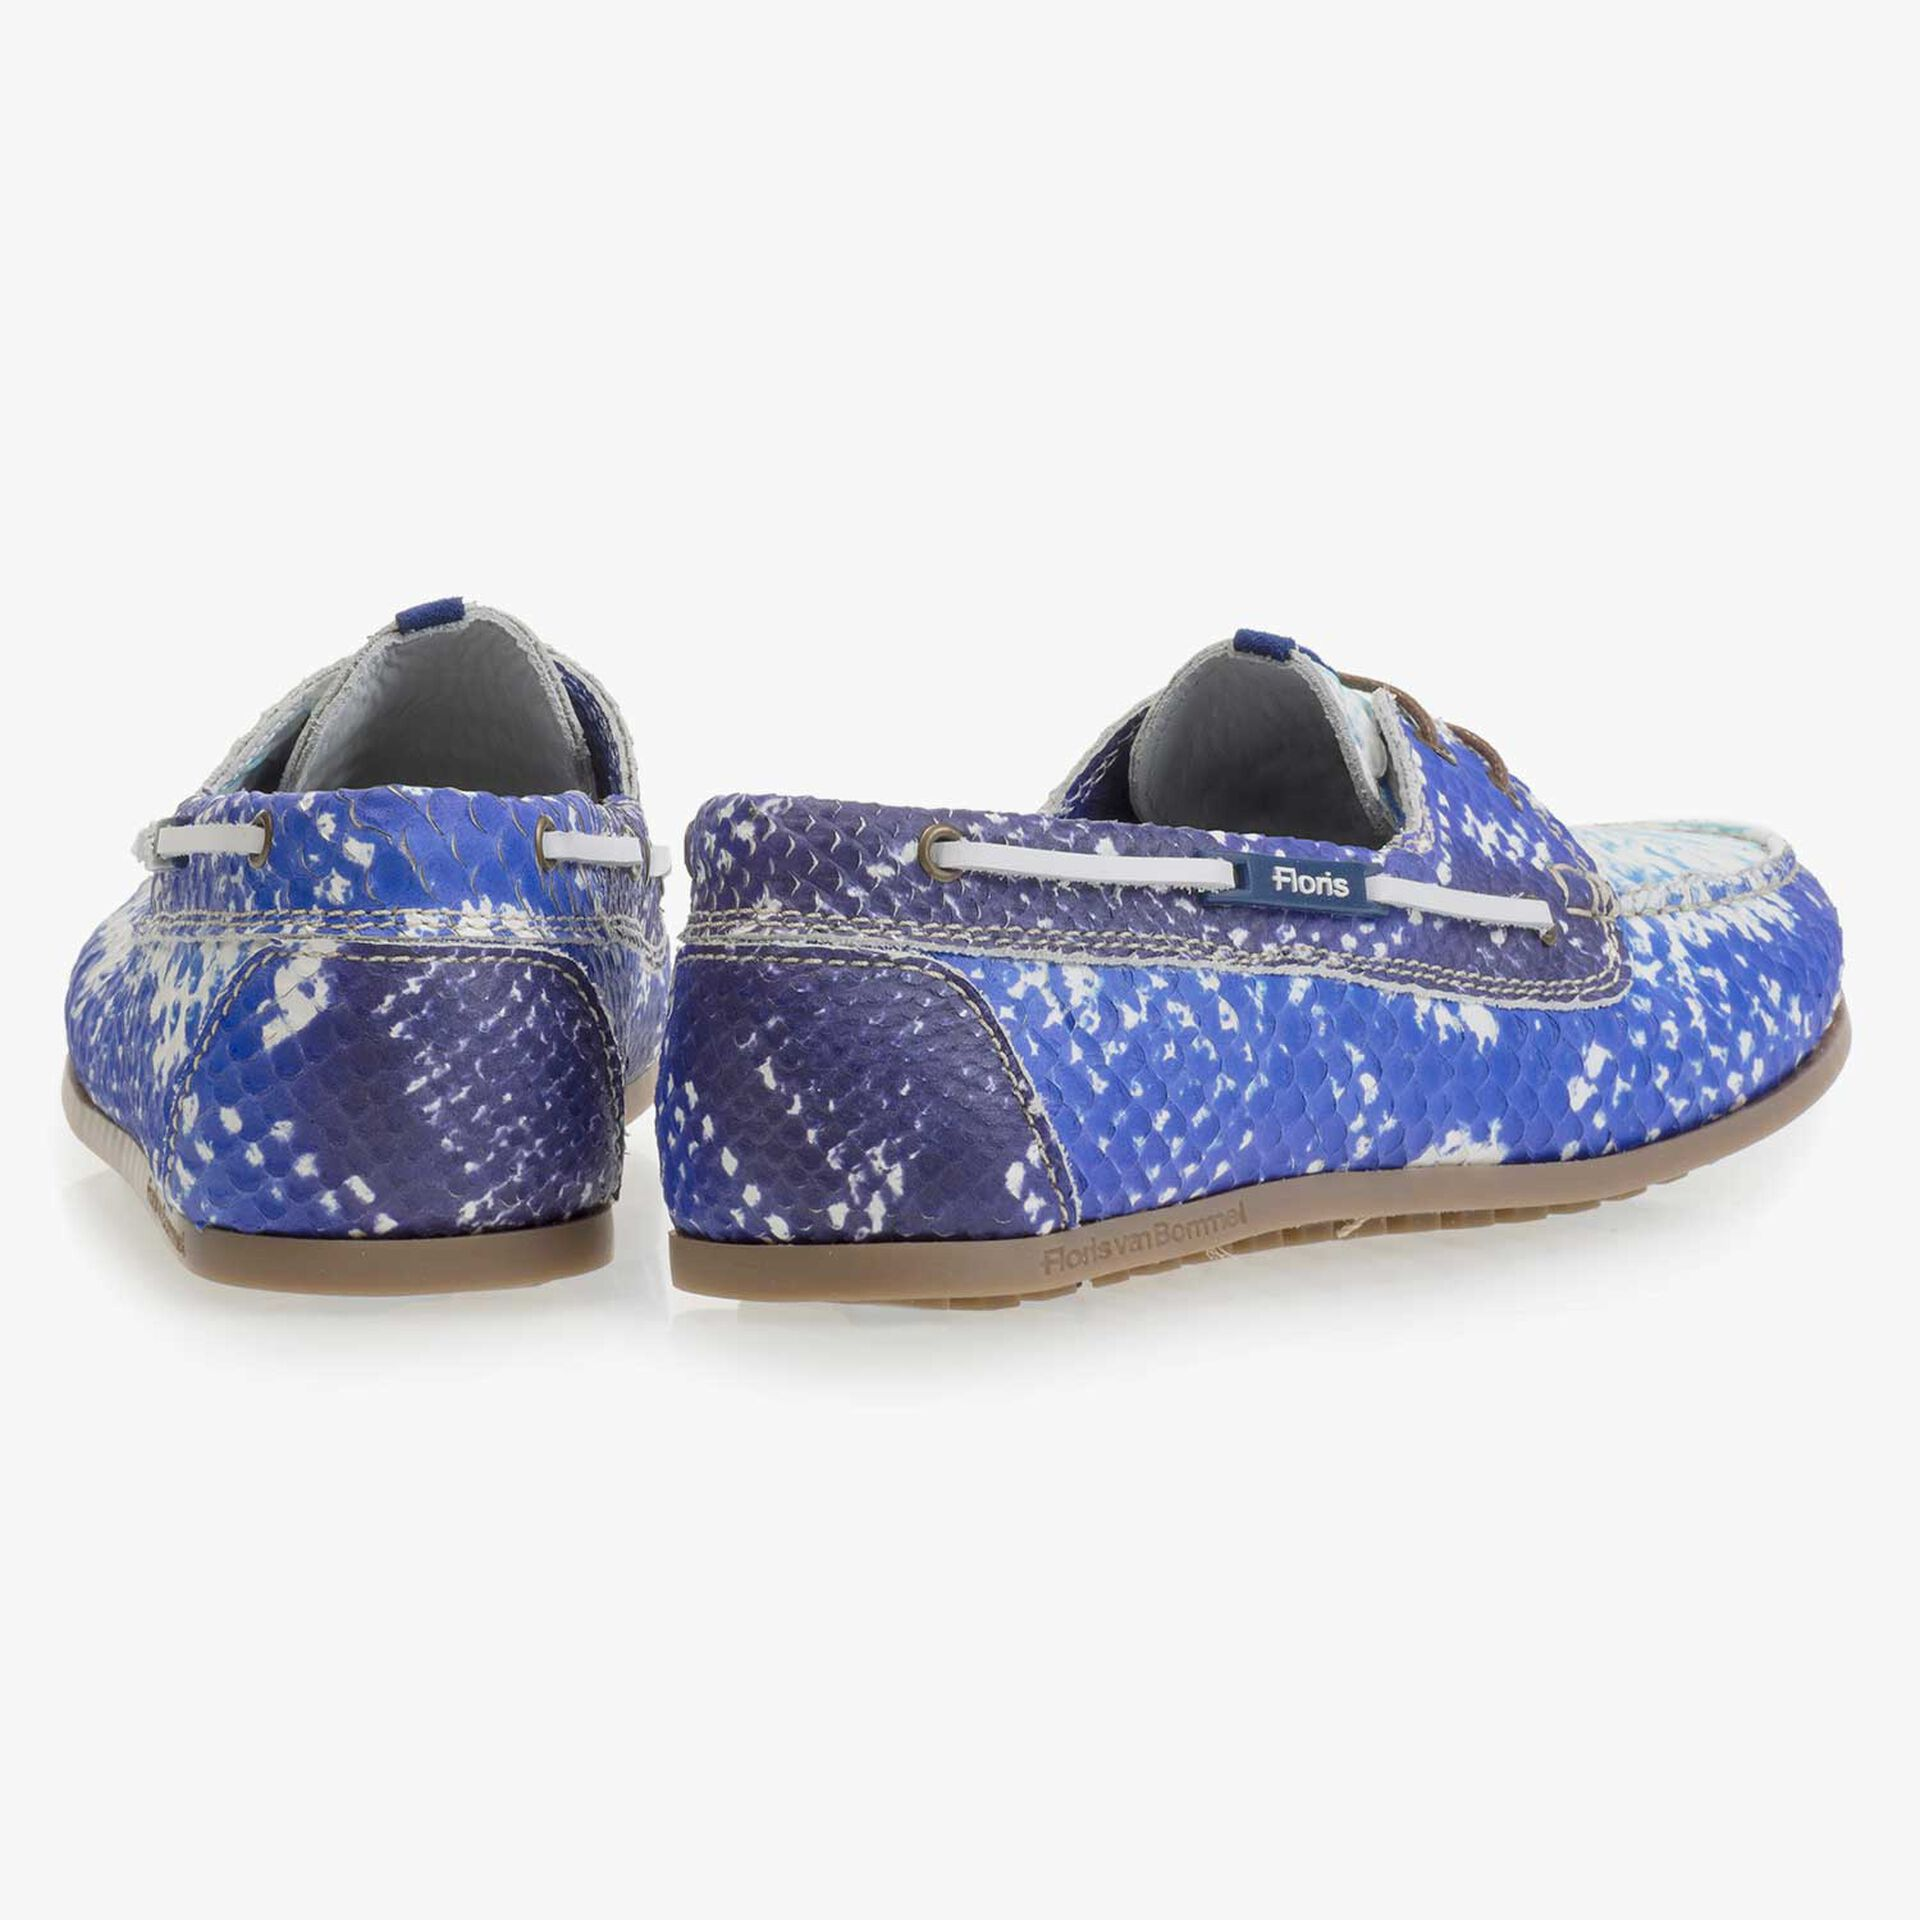 Blue leather boat shoe with snake print